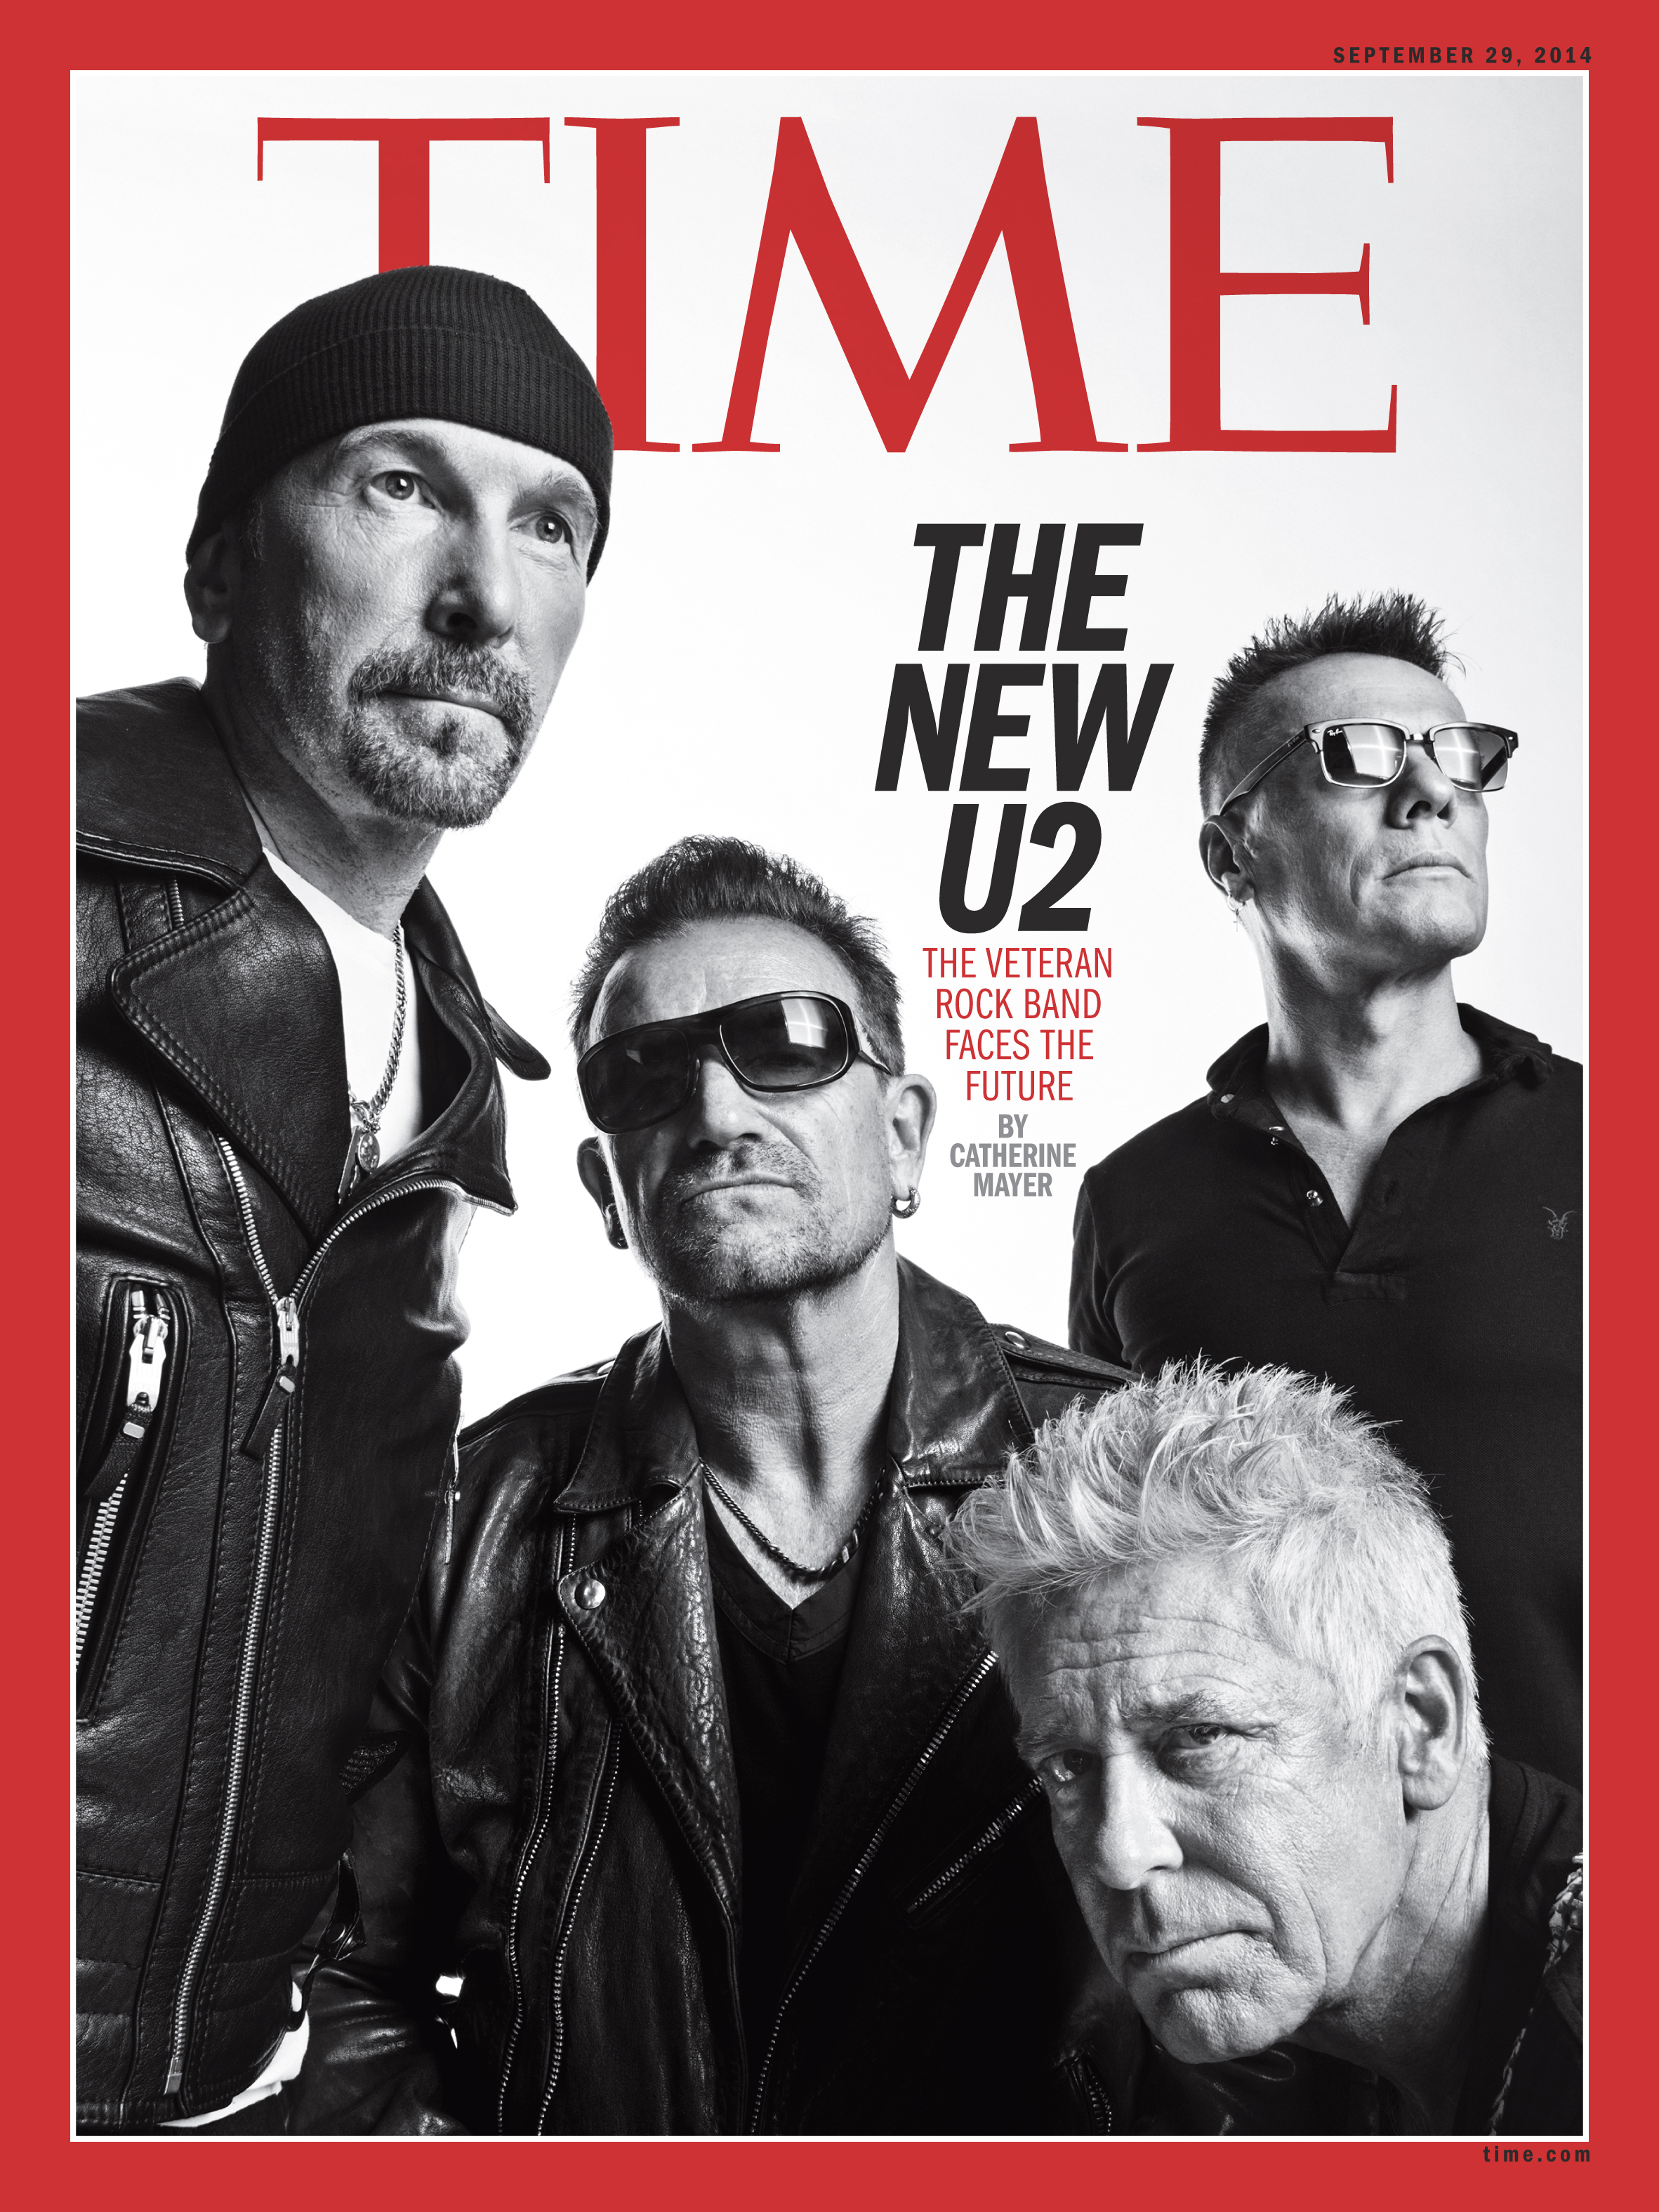 U2 on the cover of TIME's Sept. 29 International edition.